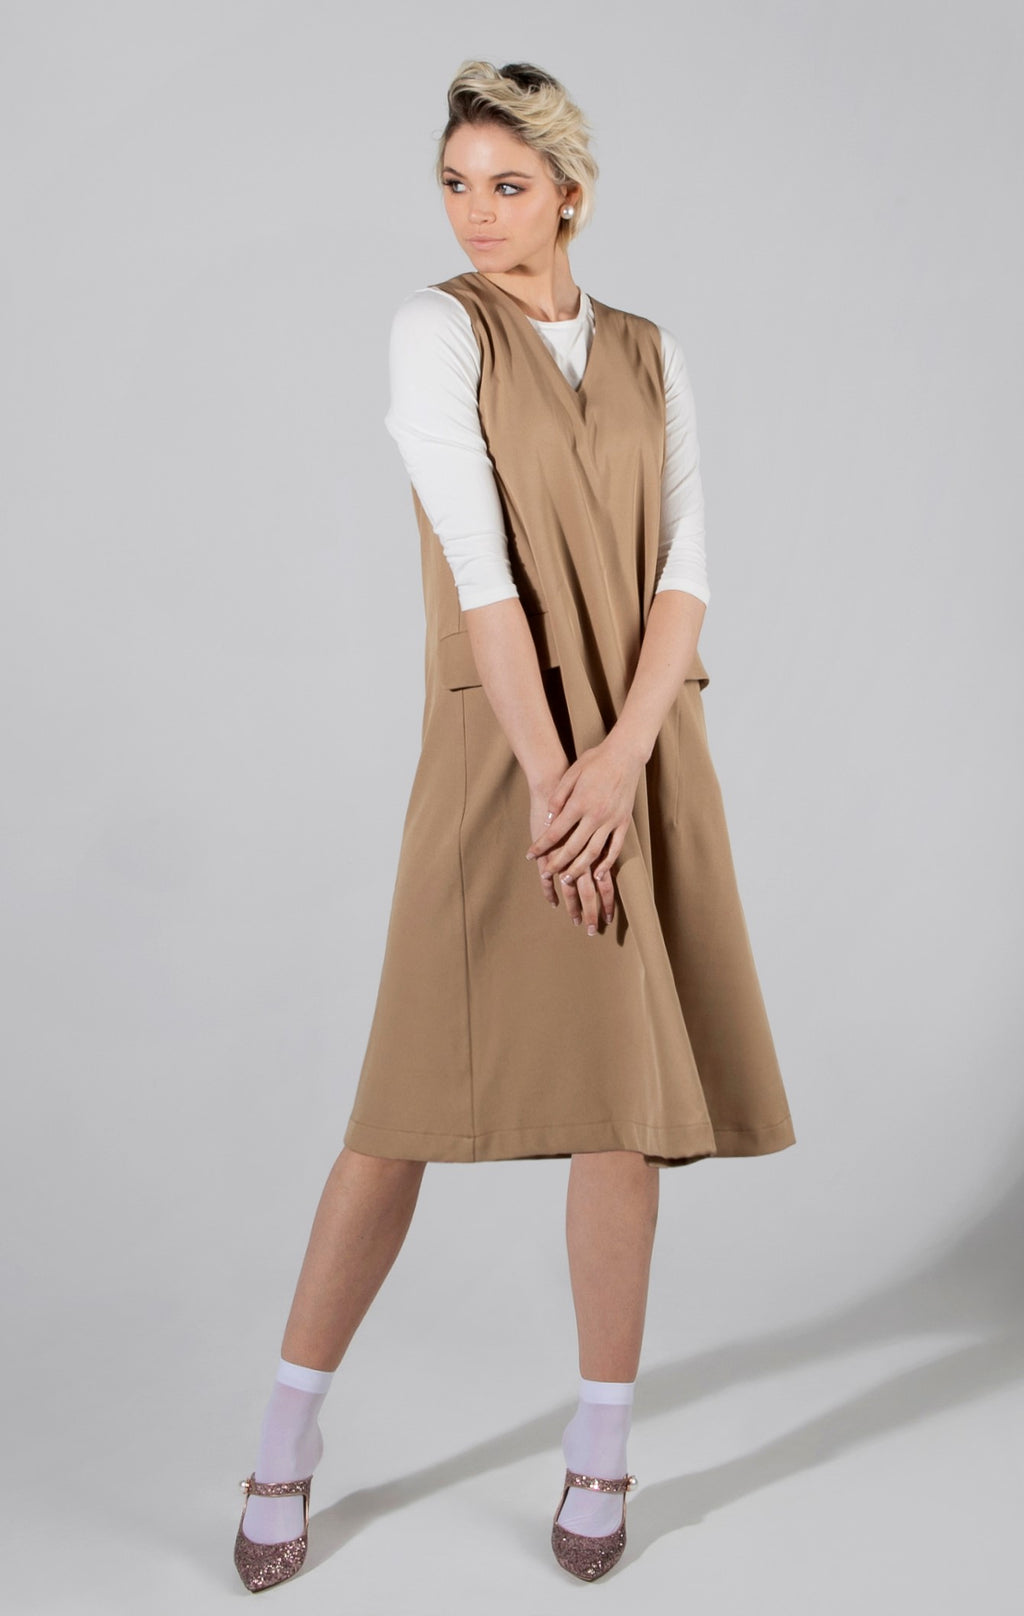 Vest Dress - available in 2 colors - FINAL SALE!